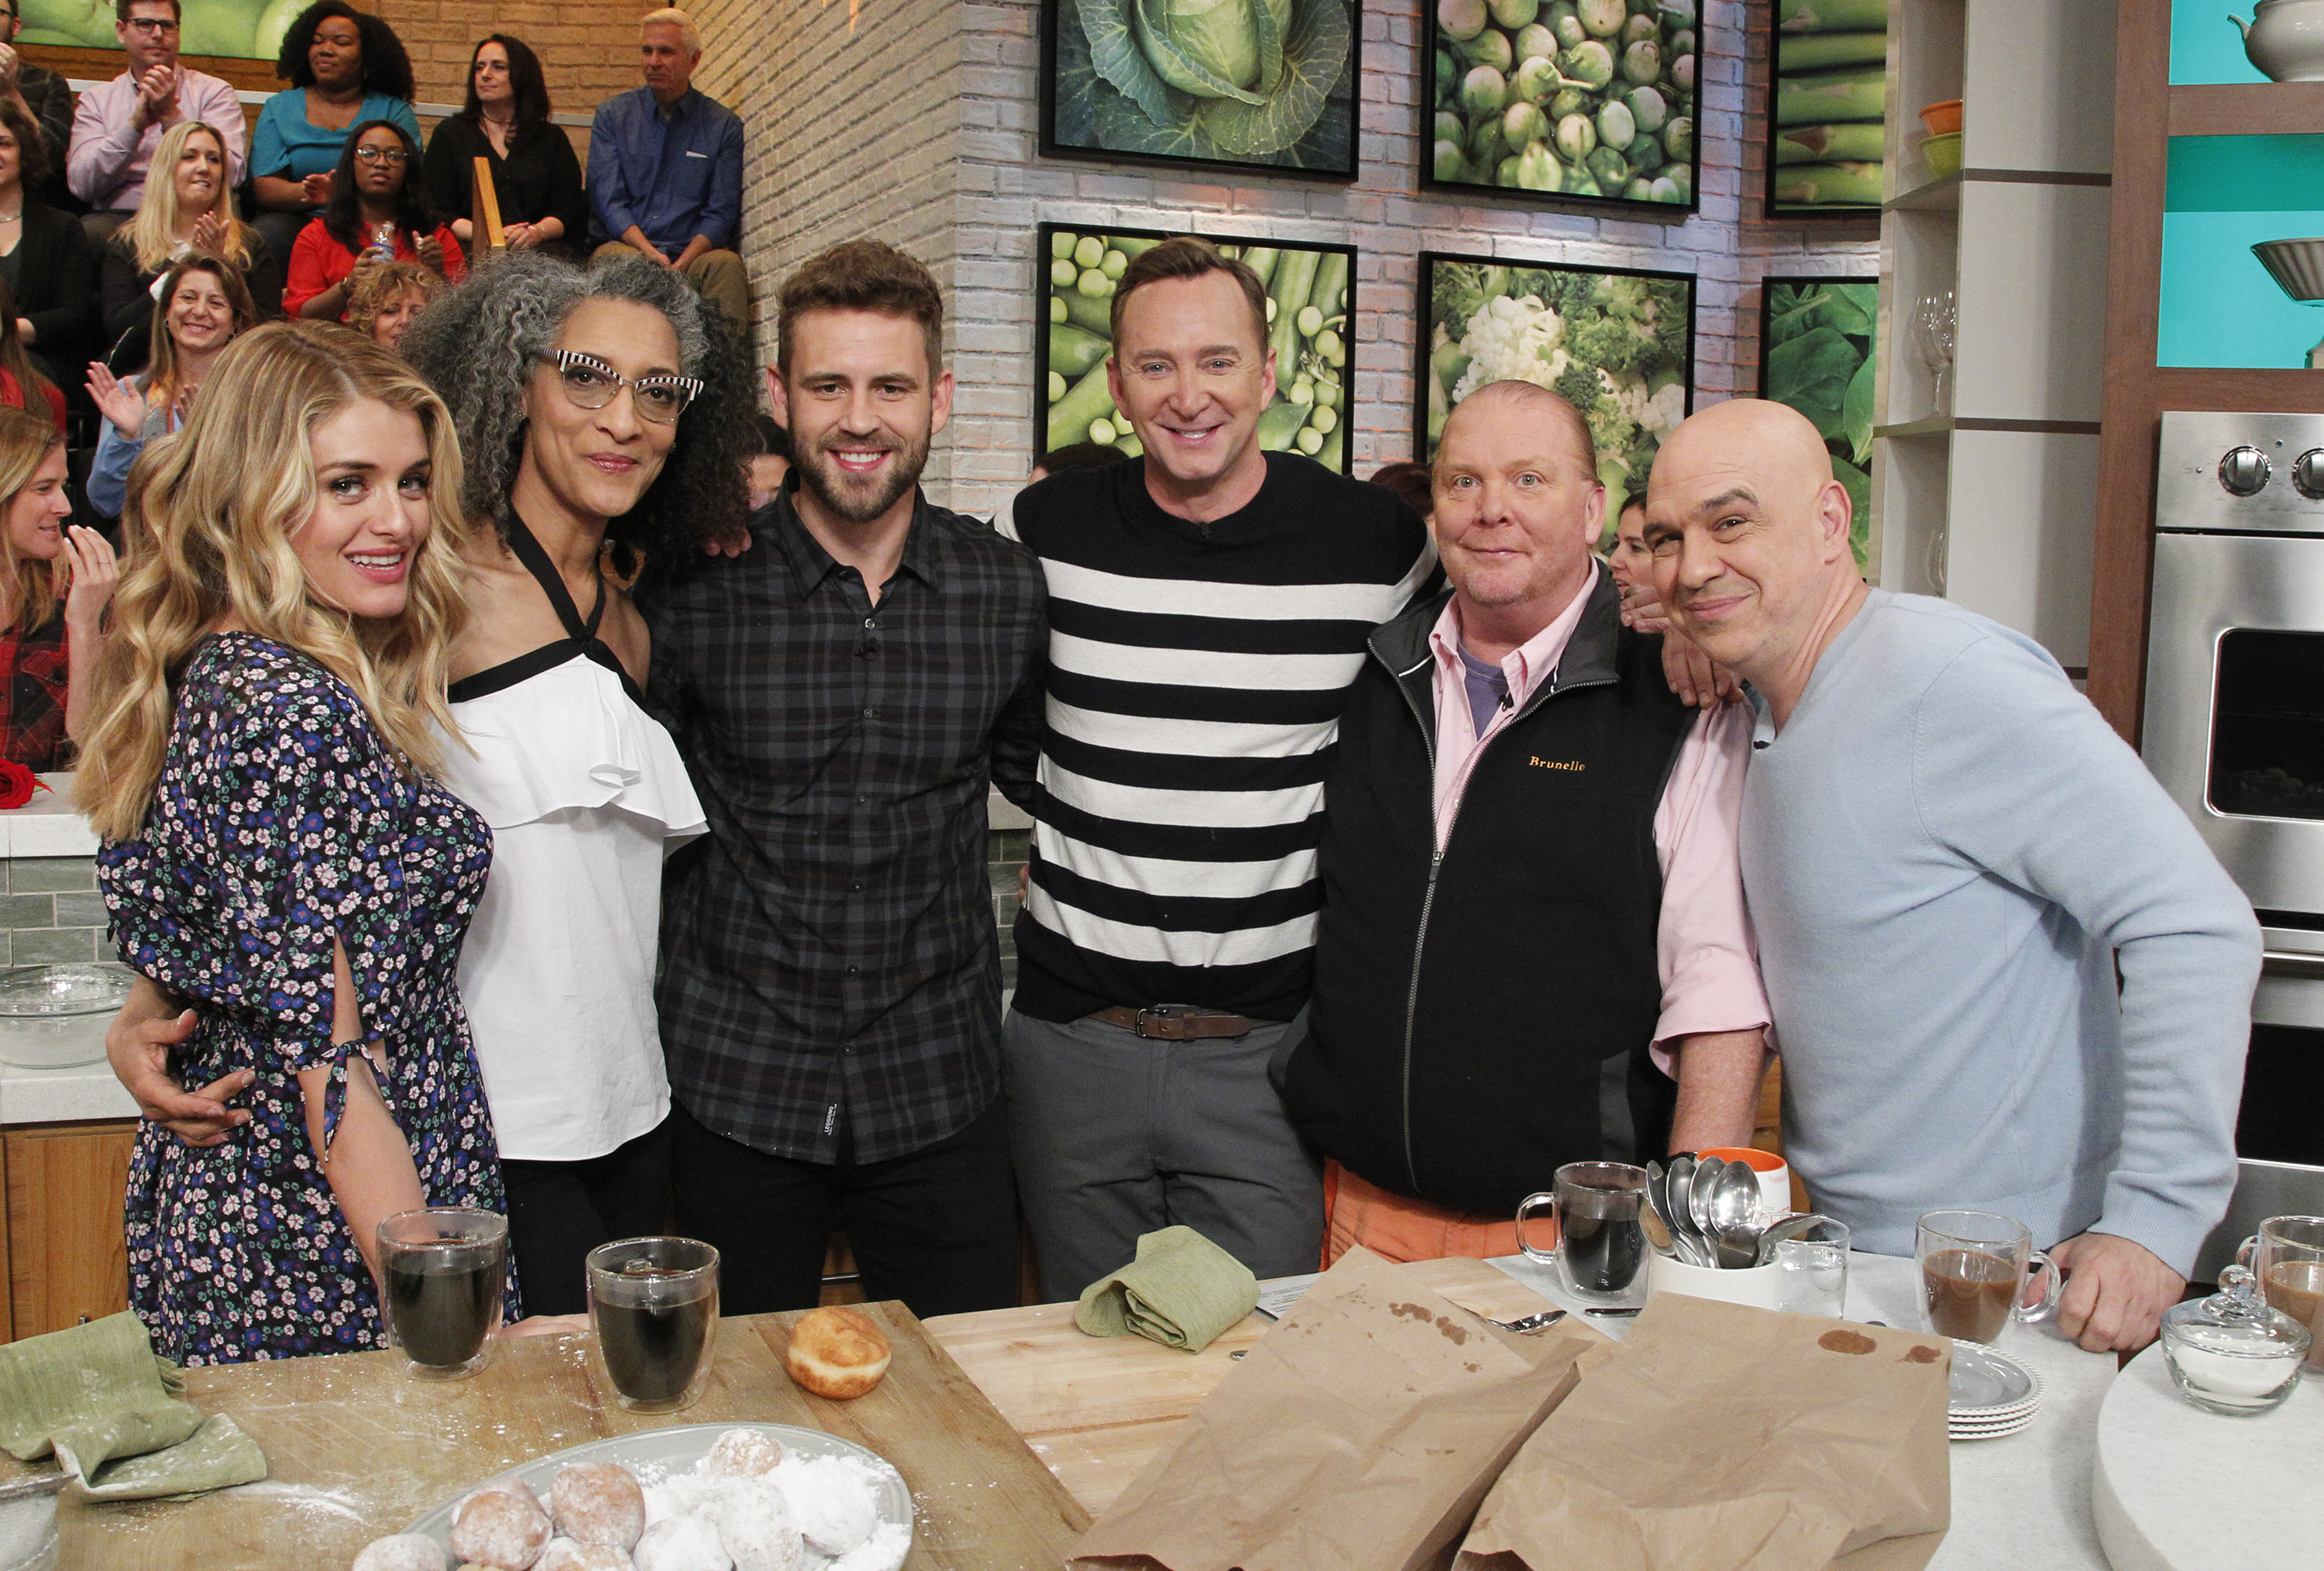 The Chew nick viall dishes and tells all in the chew interview | the chew